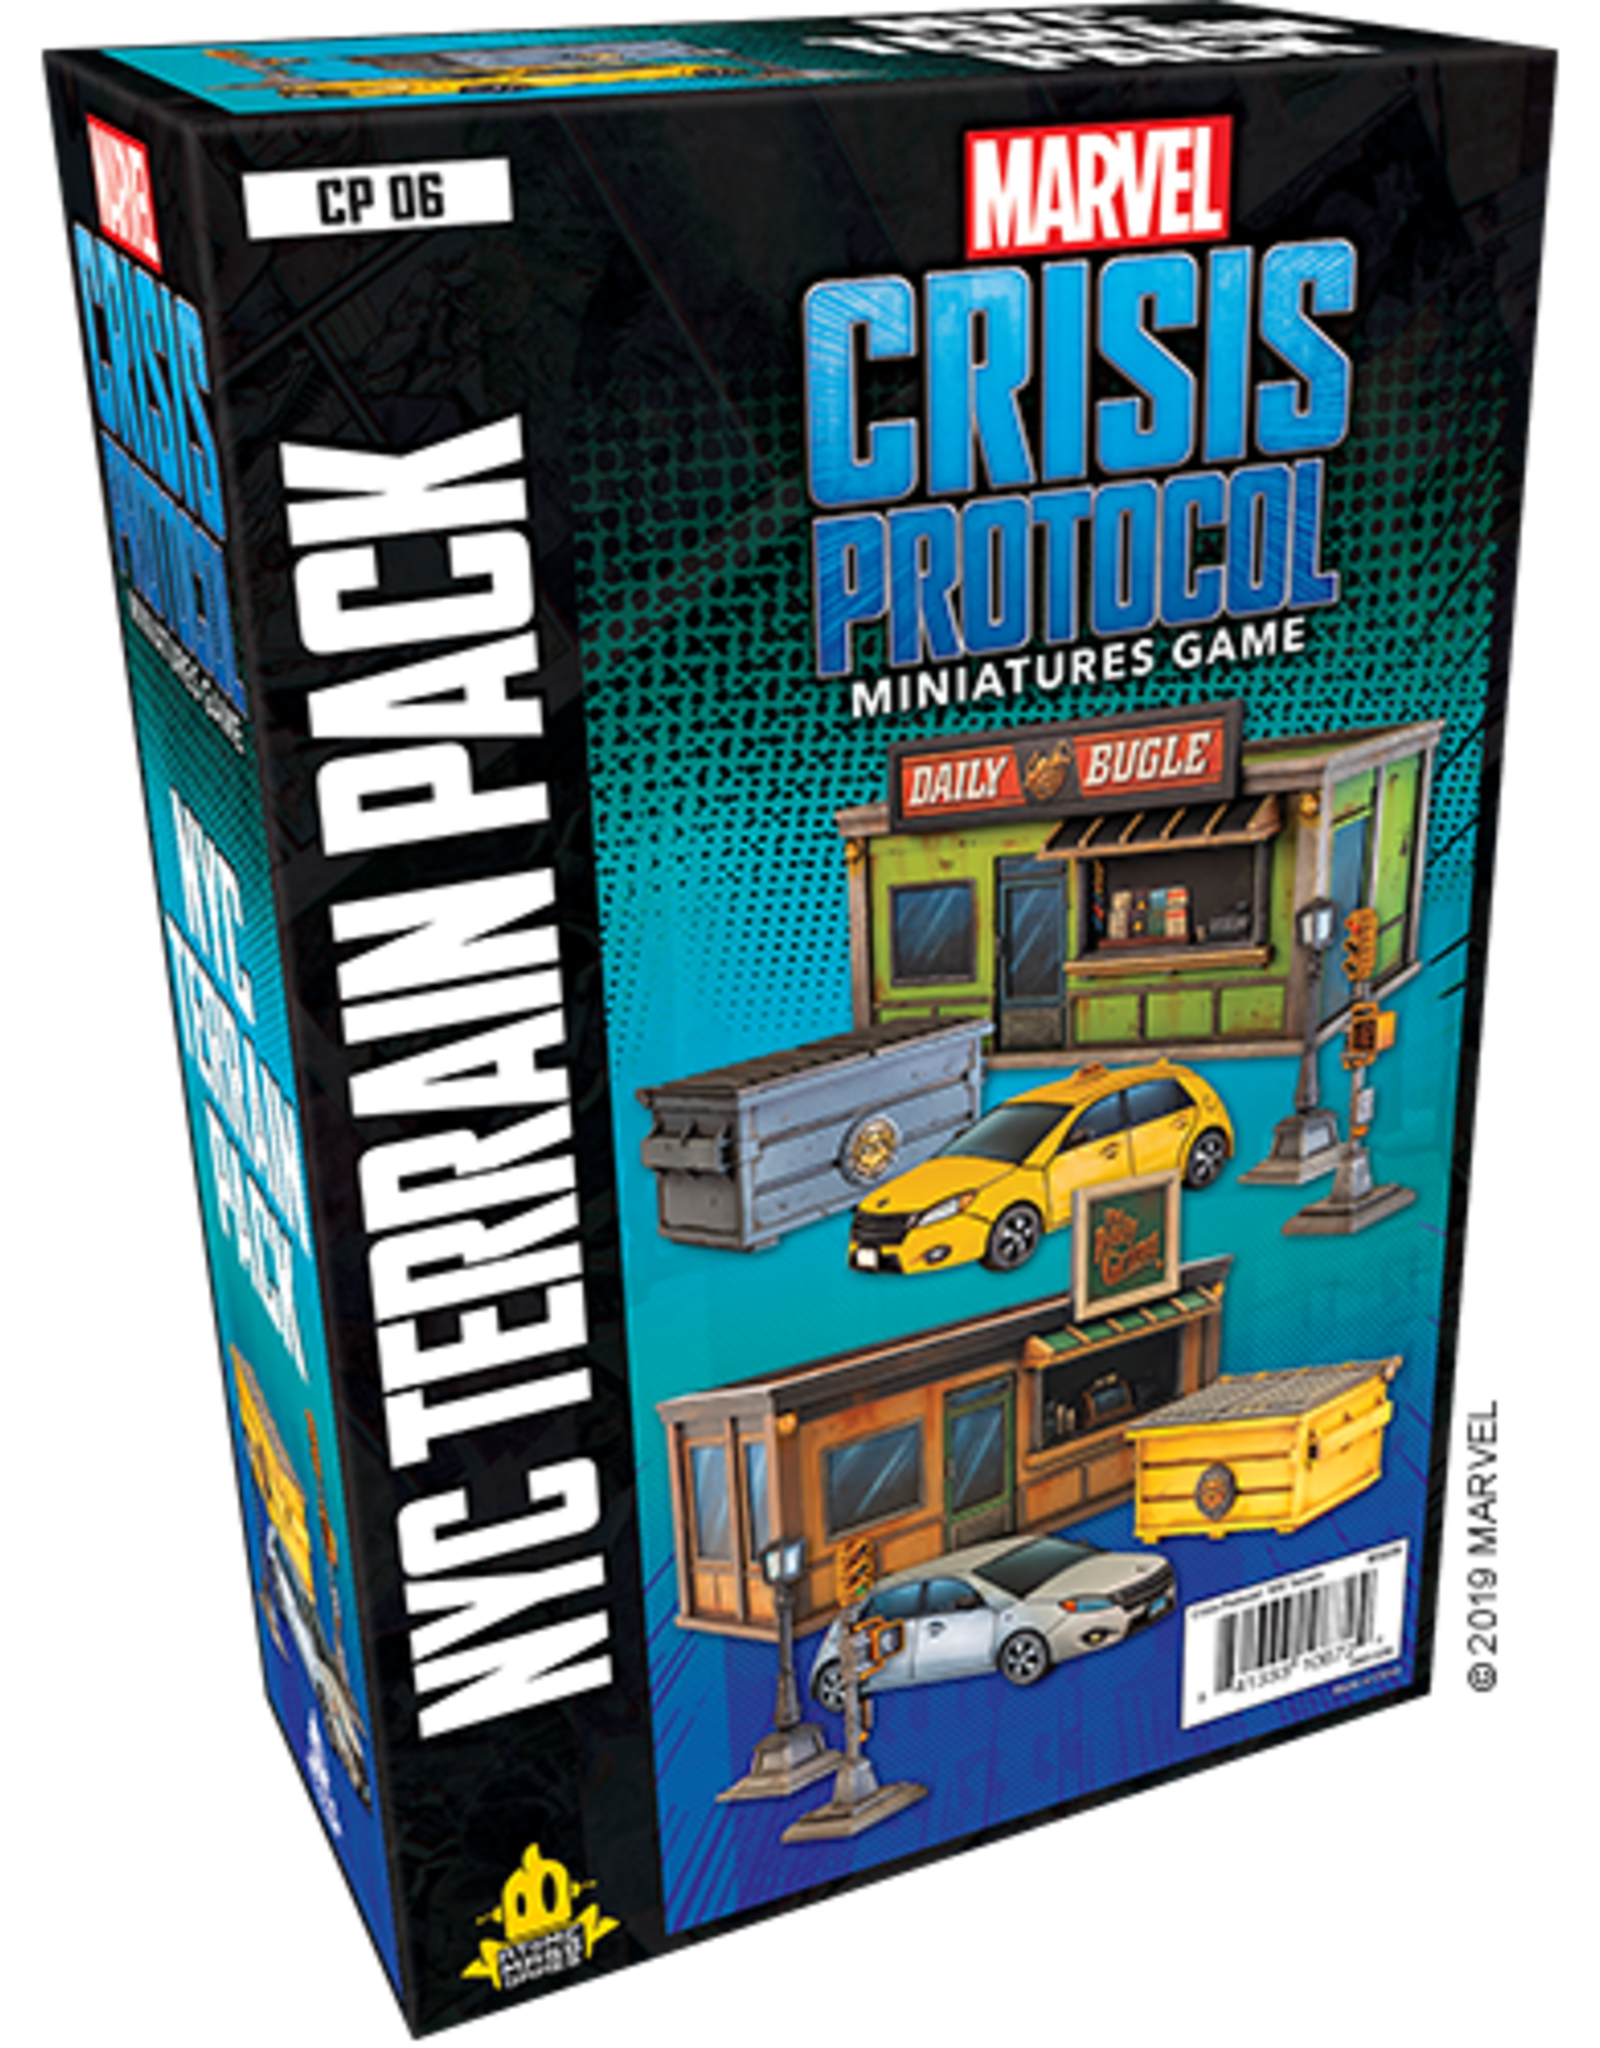 Atomic Mass Marvel Crisis Protocol NYC Terrain Pack